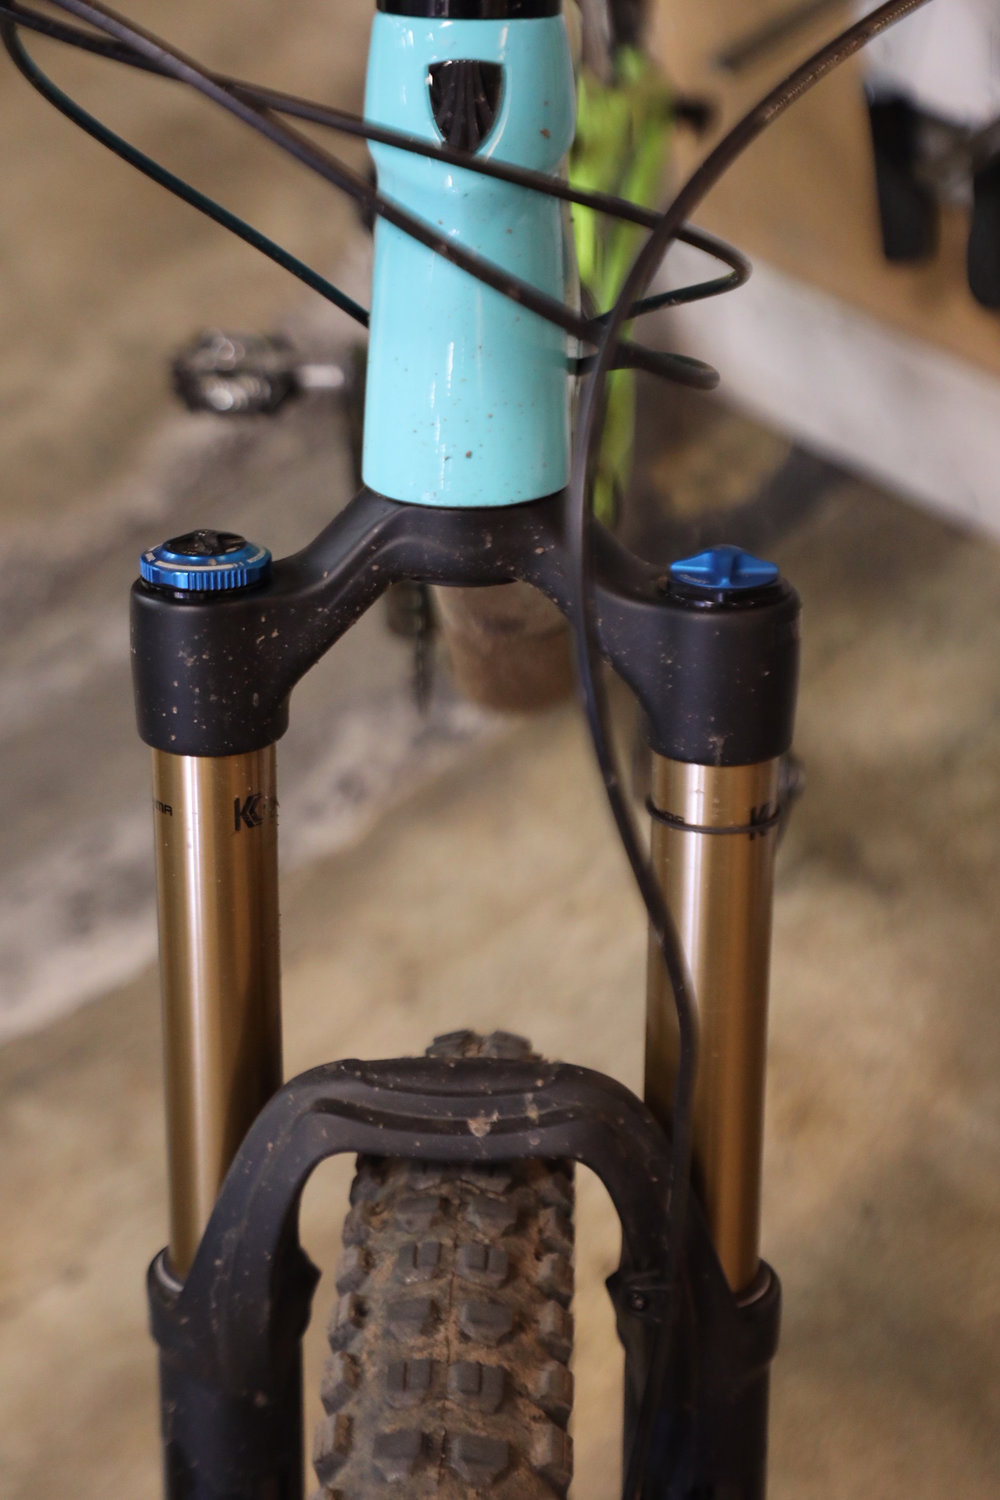 A healthy, happy looking front fork.